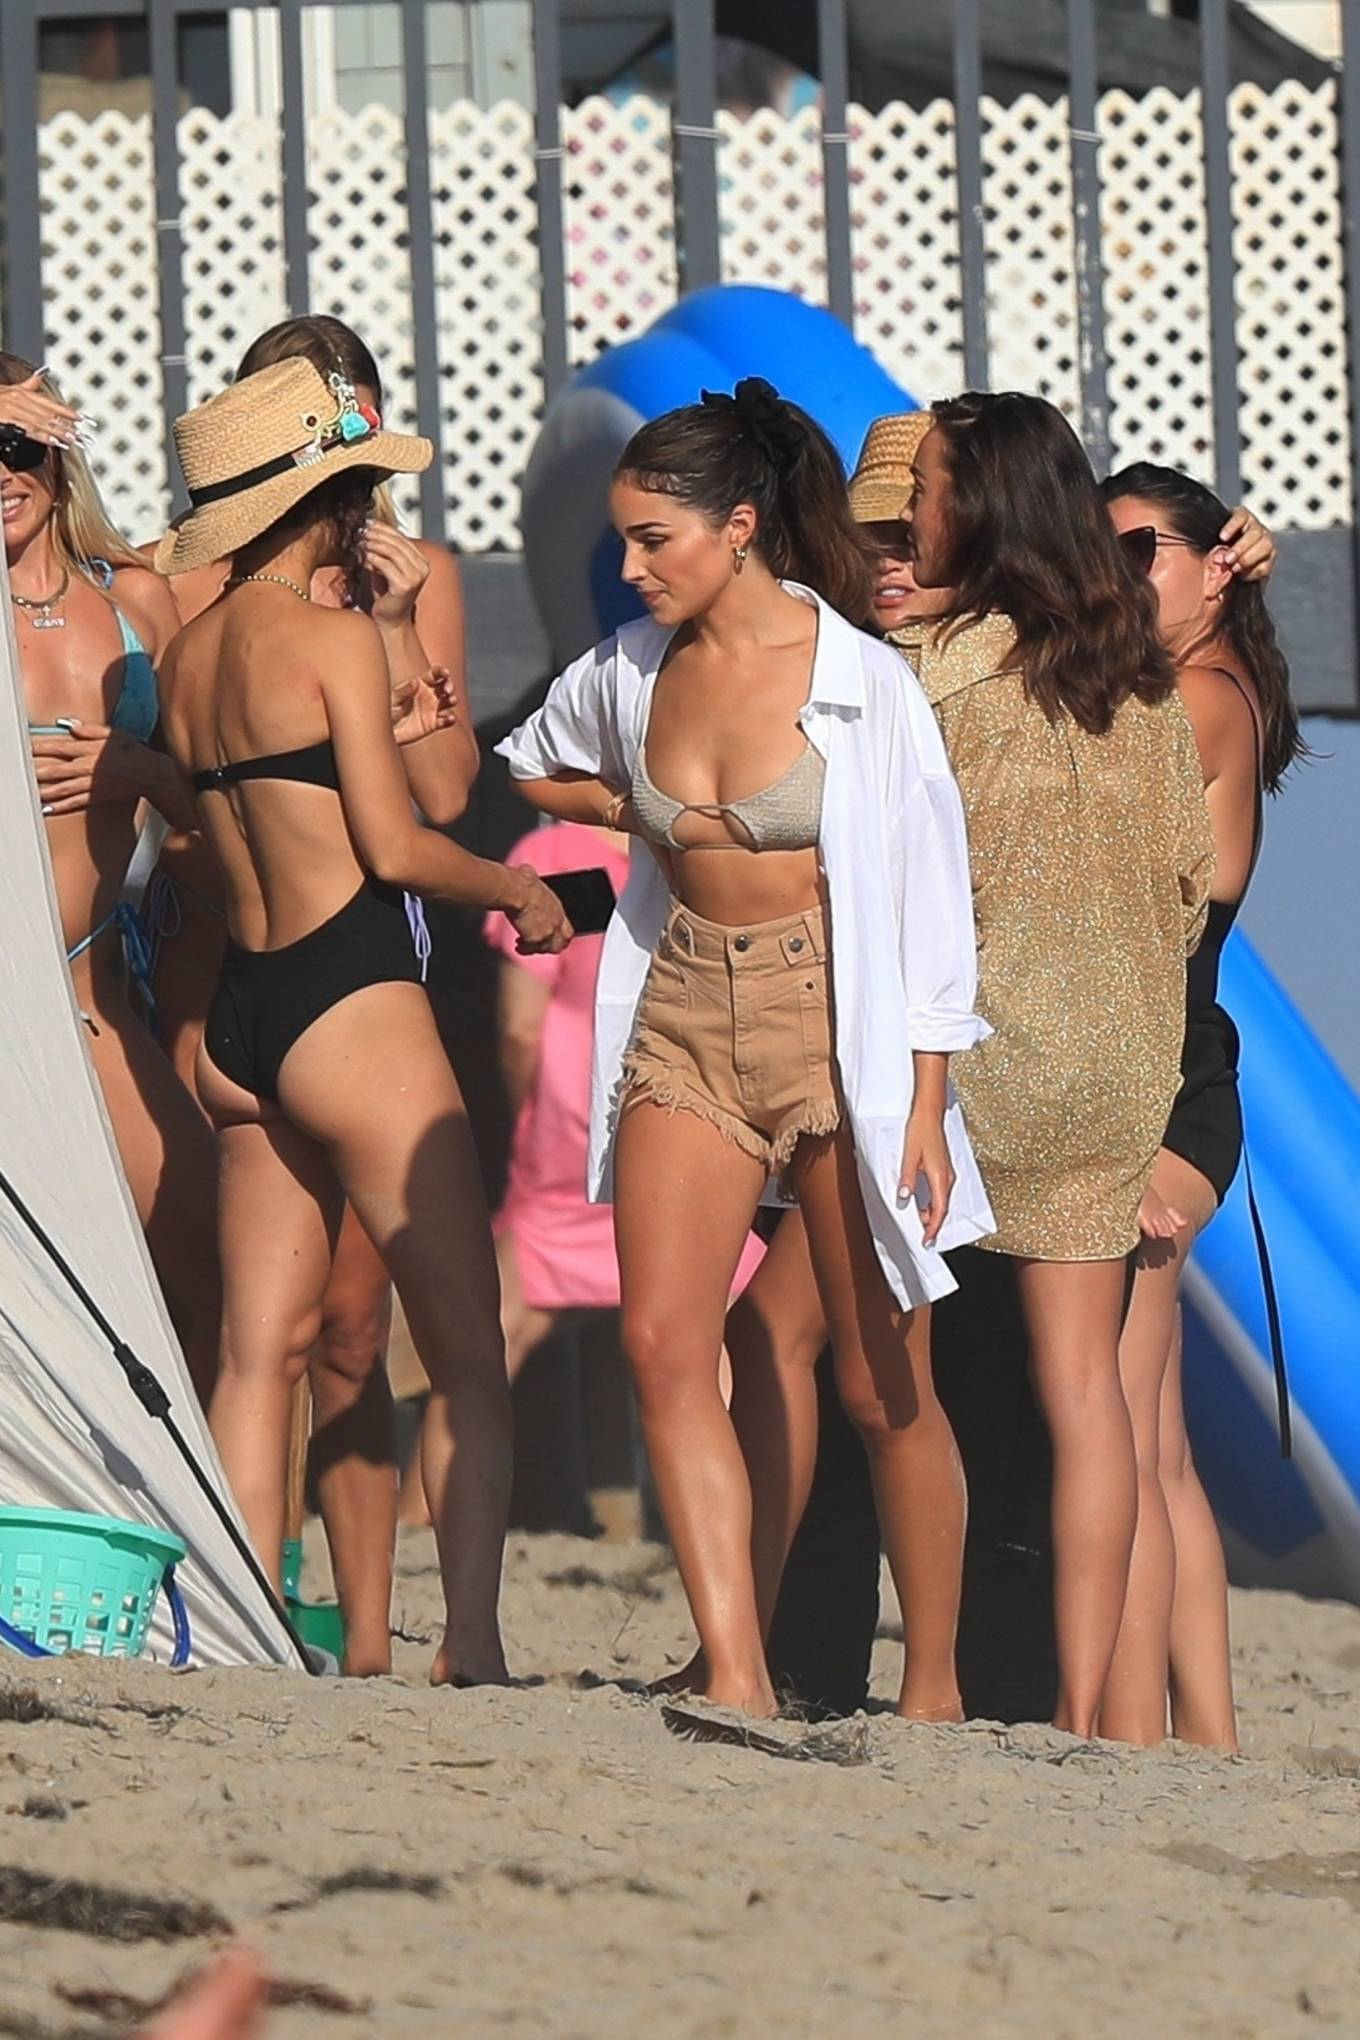 Olivia Culpo - Celebrating Cara Santana's birthday at the beach in Malibu